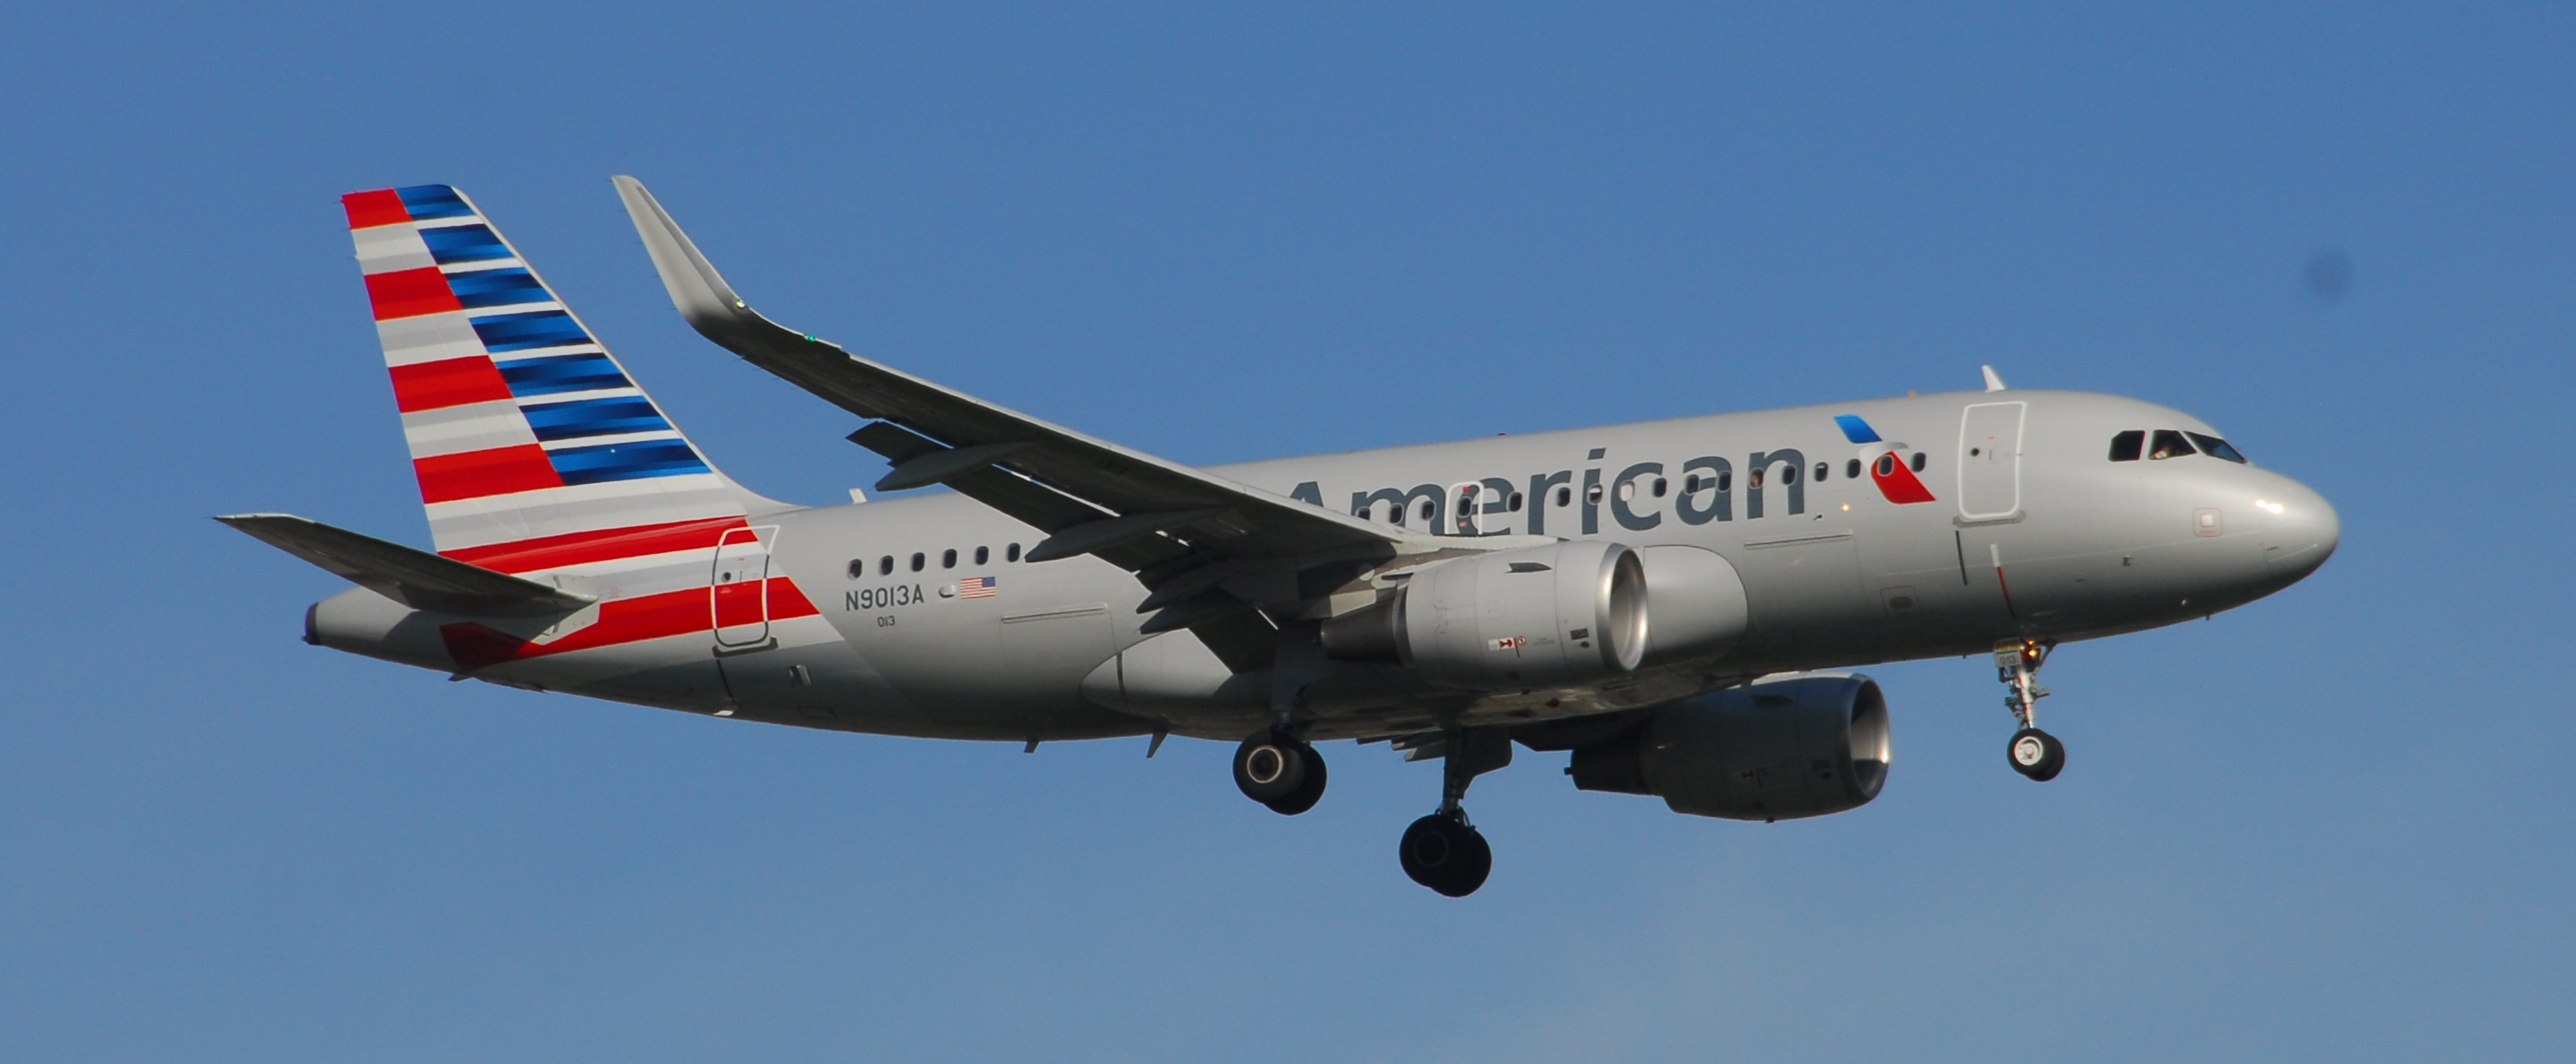 File American Airlines Airbus A319 112 N9013a 013